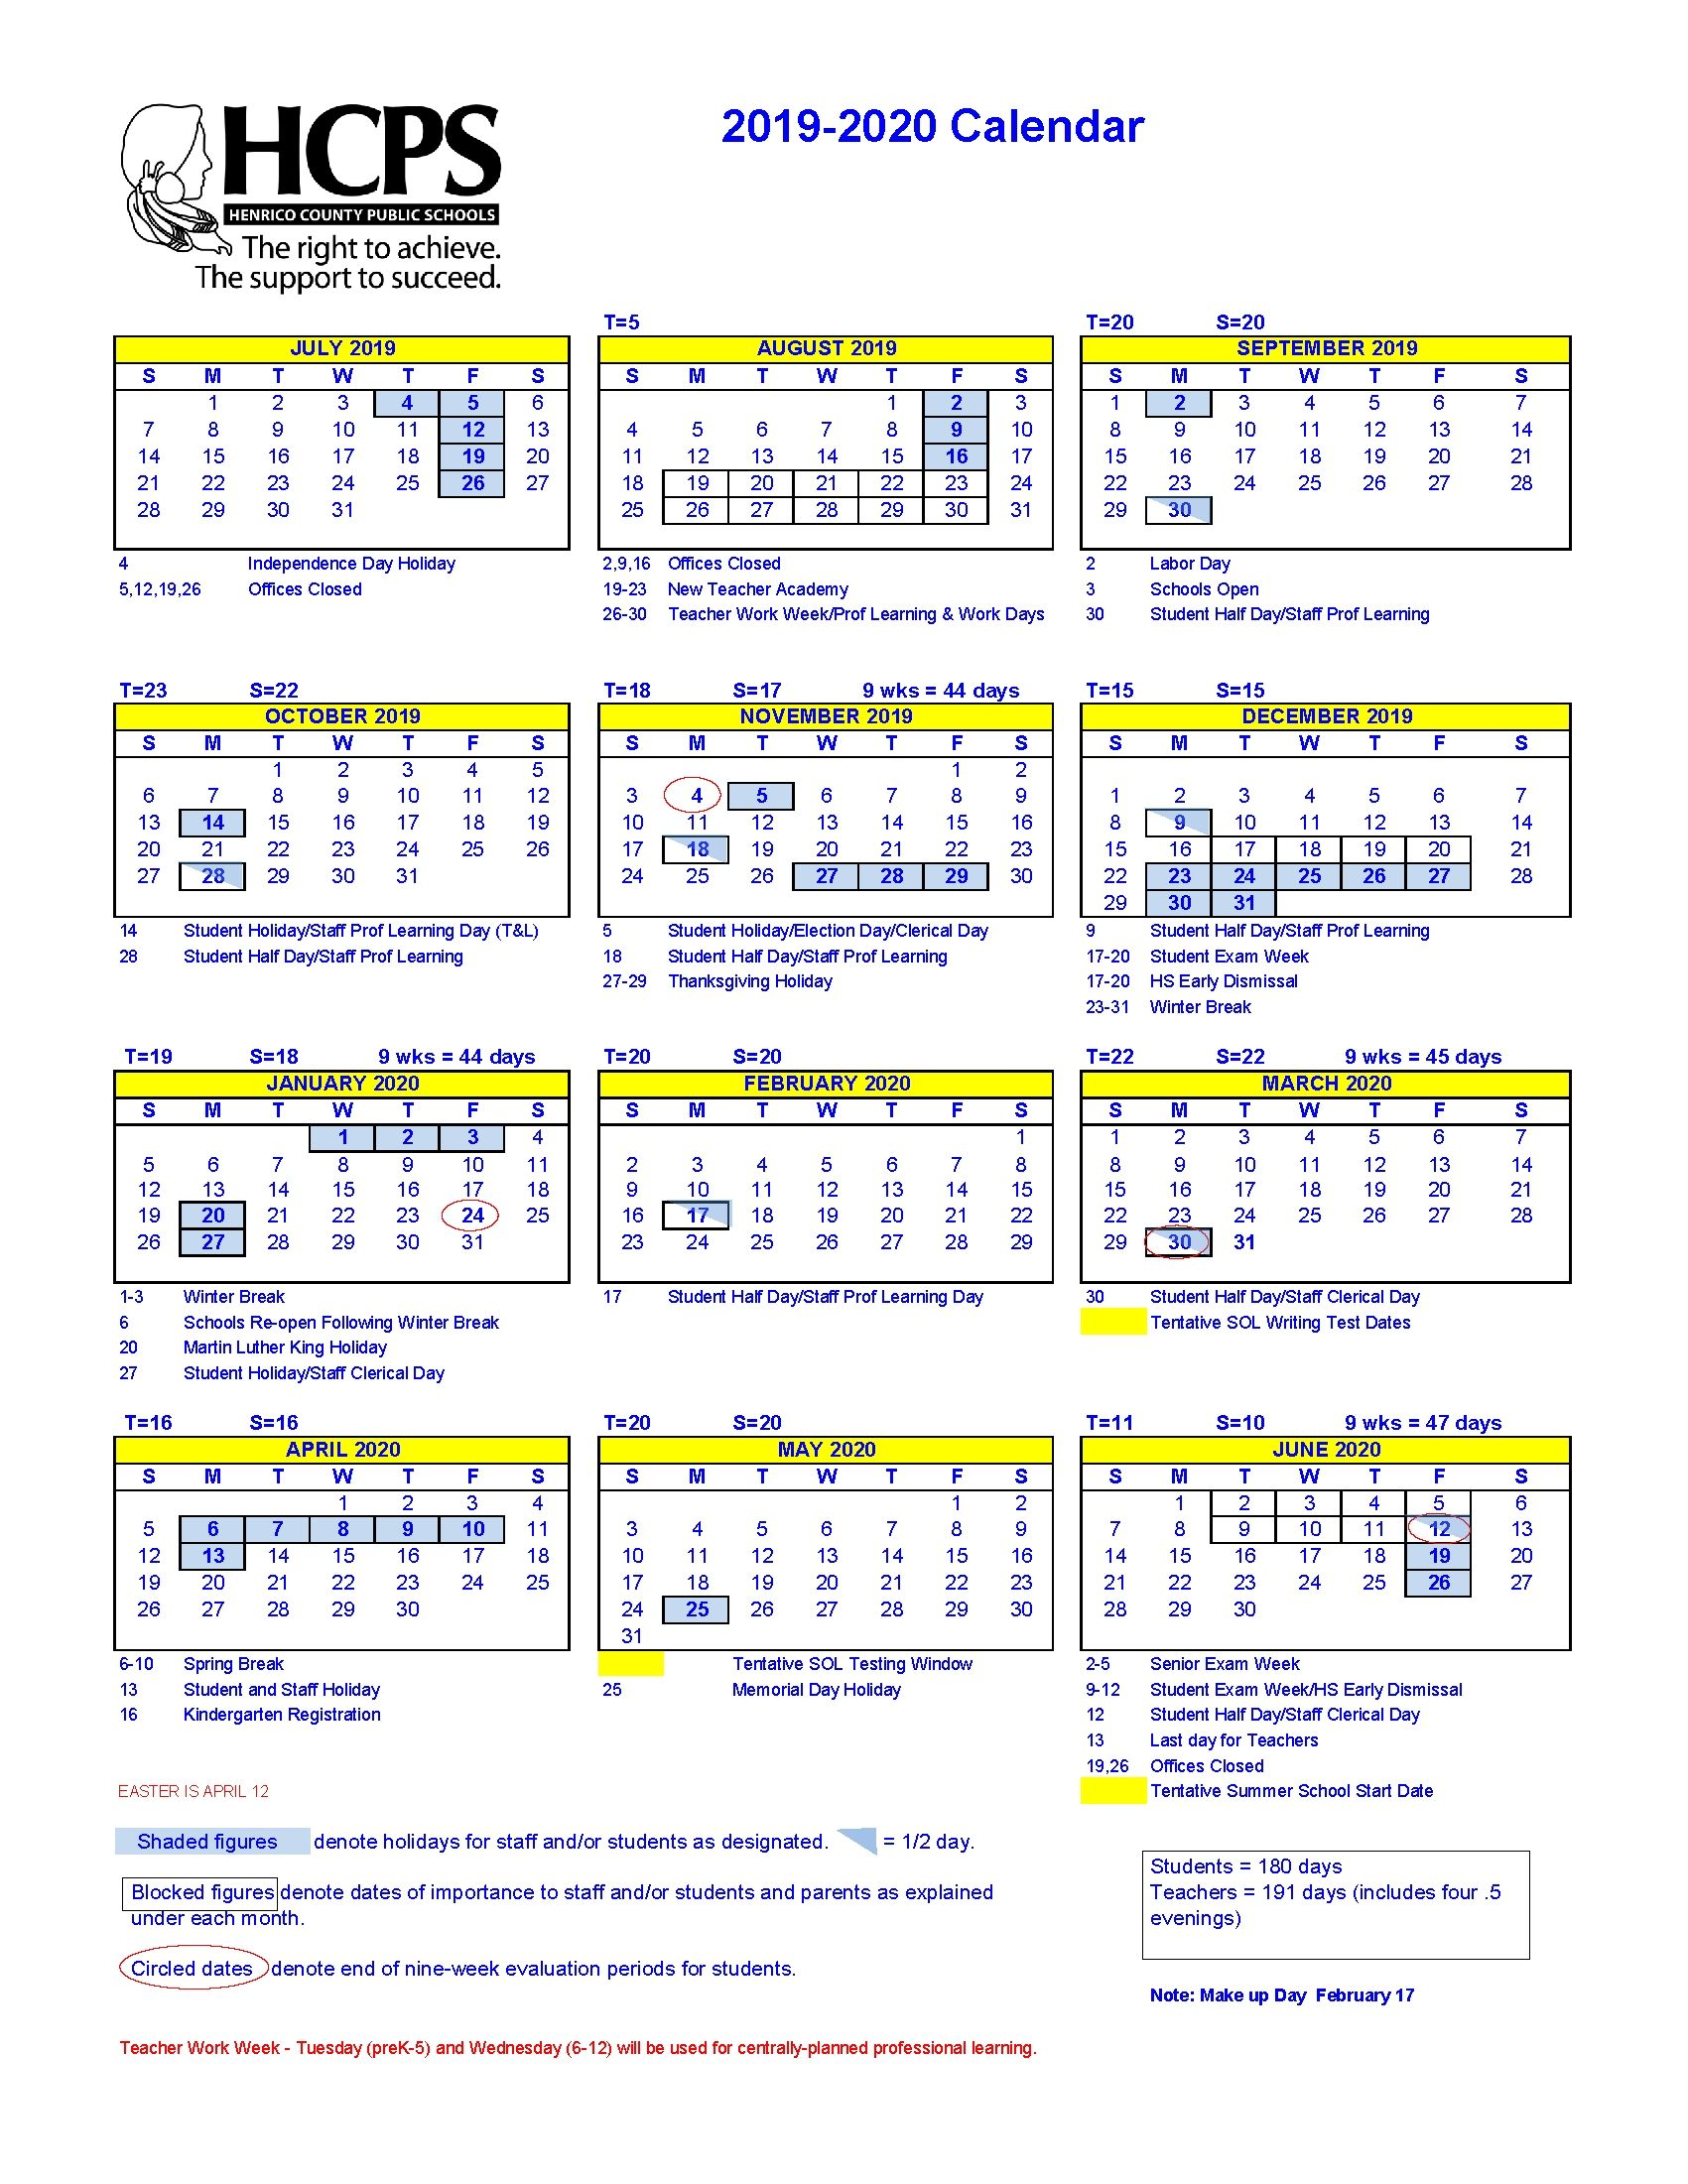 Take August 9 2019 Through September 3 2019 Calendar School